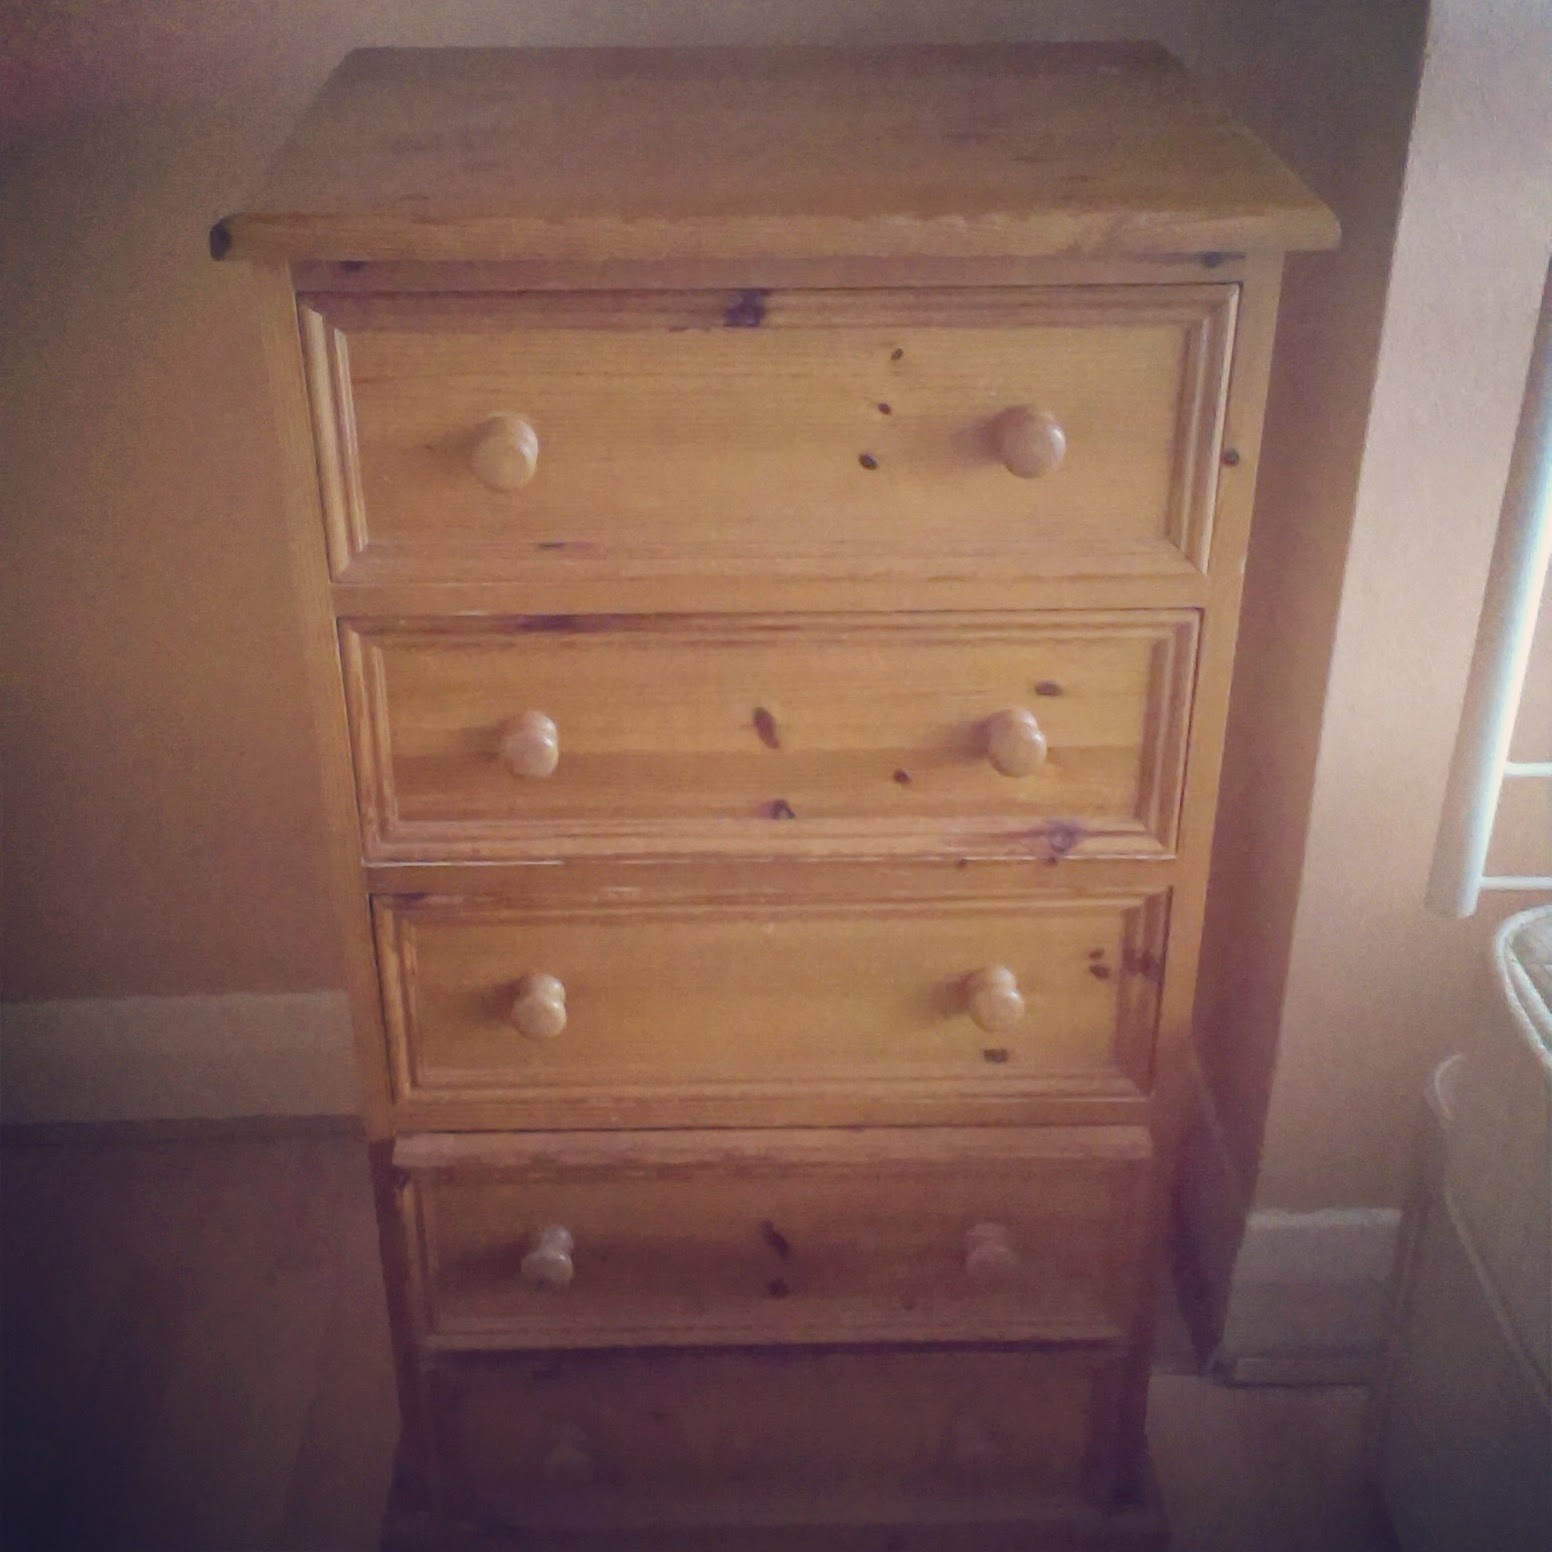 4pm - getting an old chest of drawers ready to be redorated